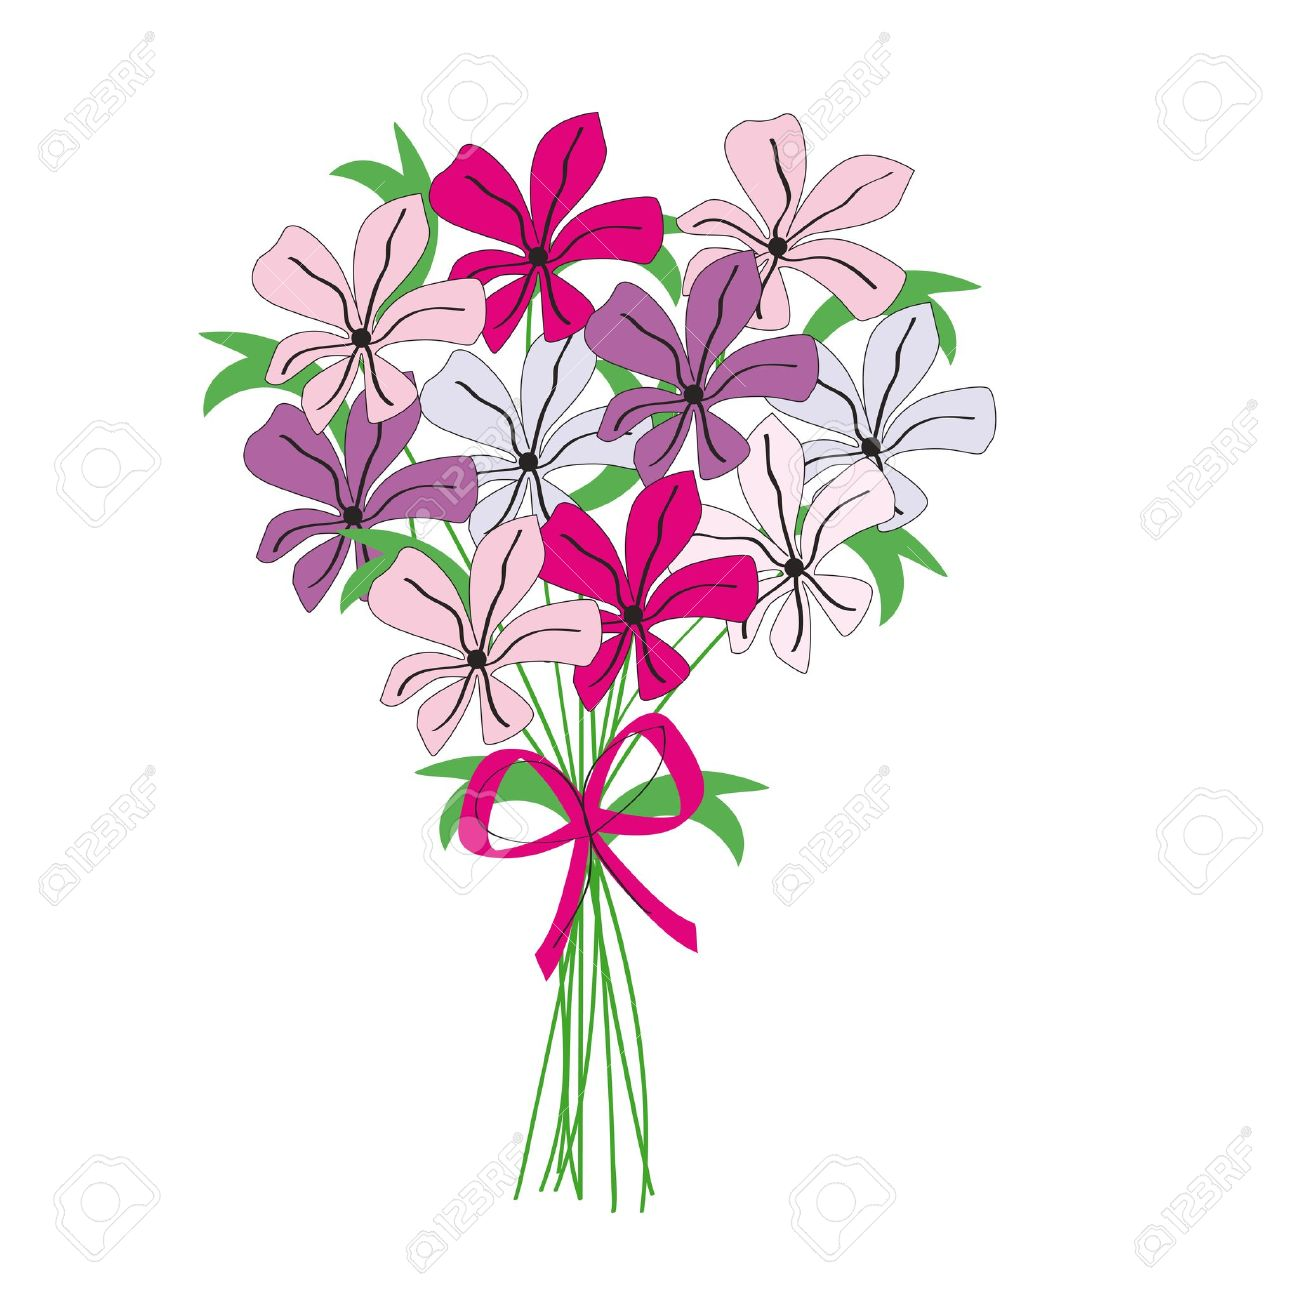 Bouquet clipart flower bundle. Bunch drawing at getdrawings